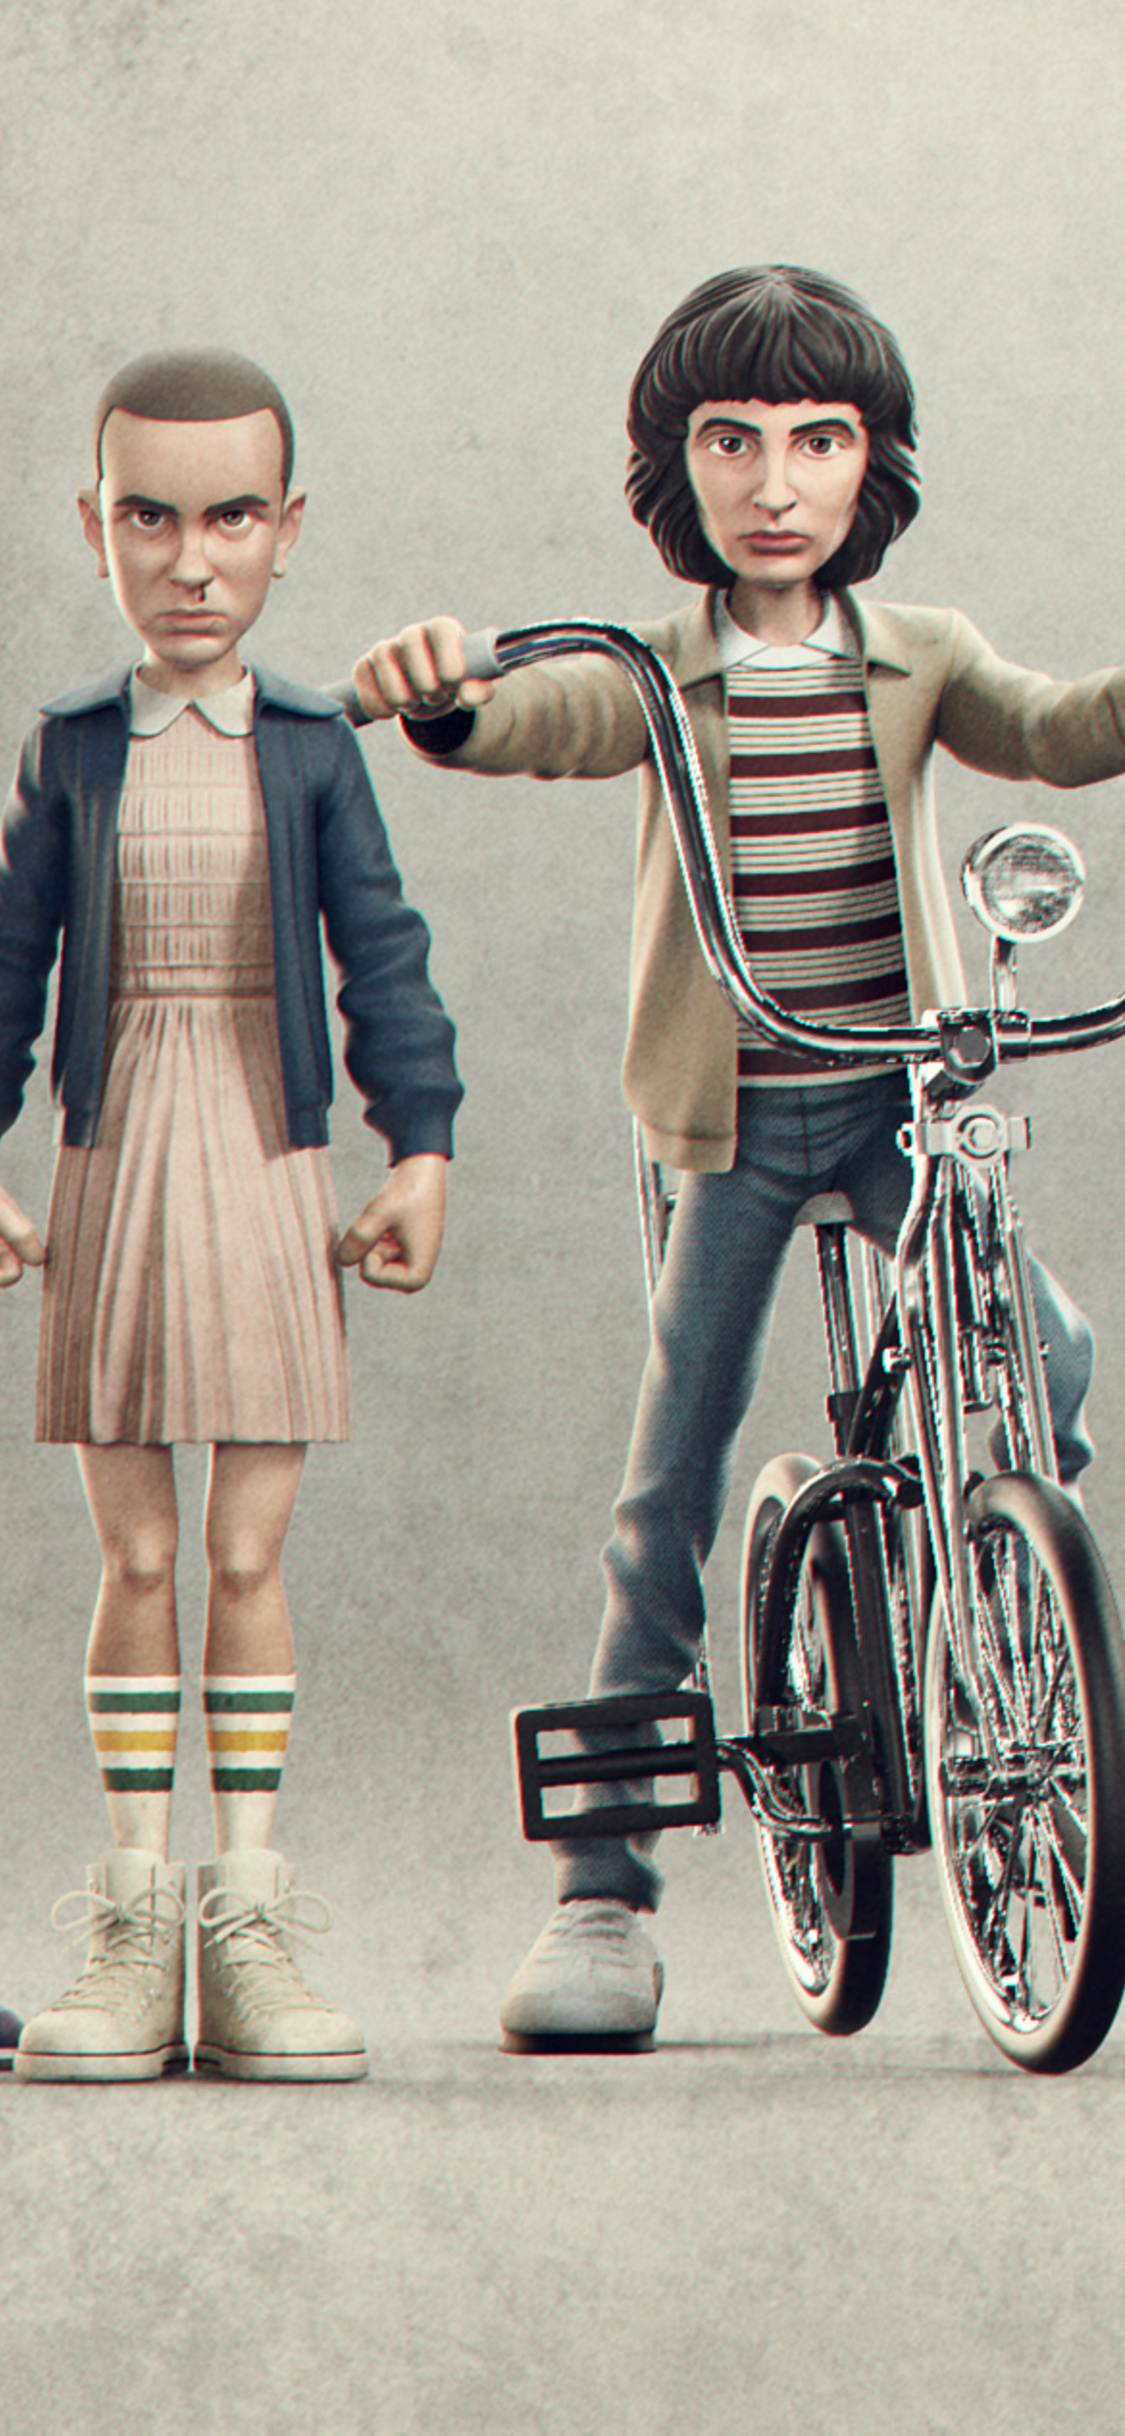 stranger-things-season-4-artwork-sc.jpg